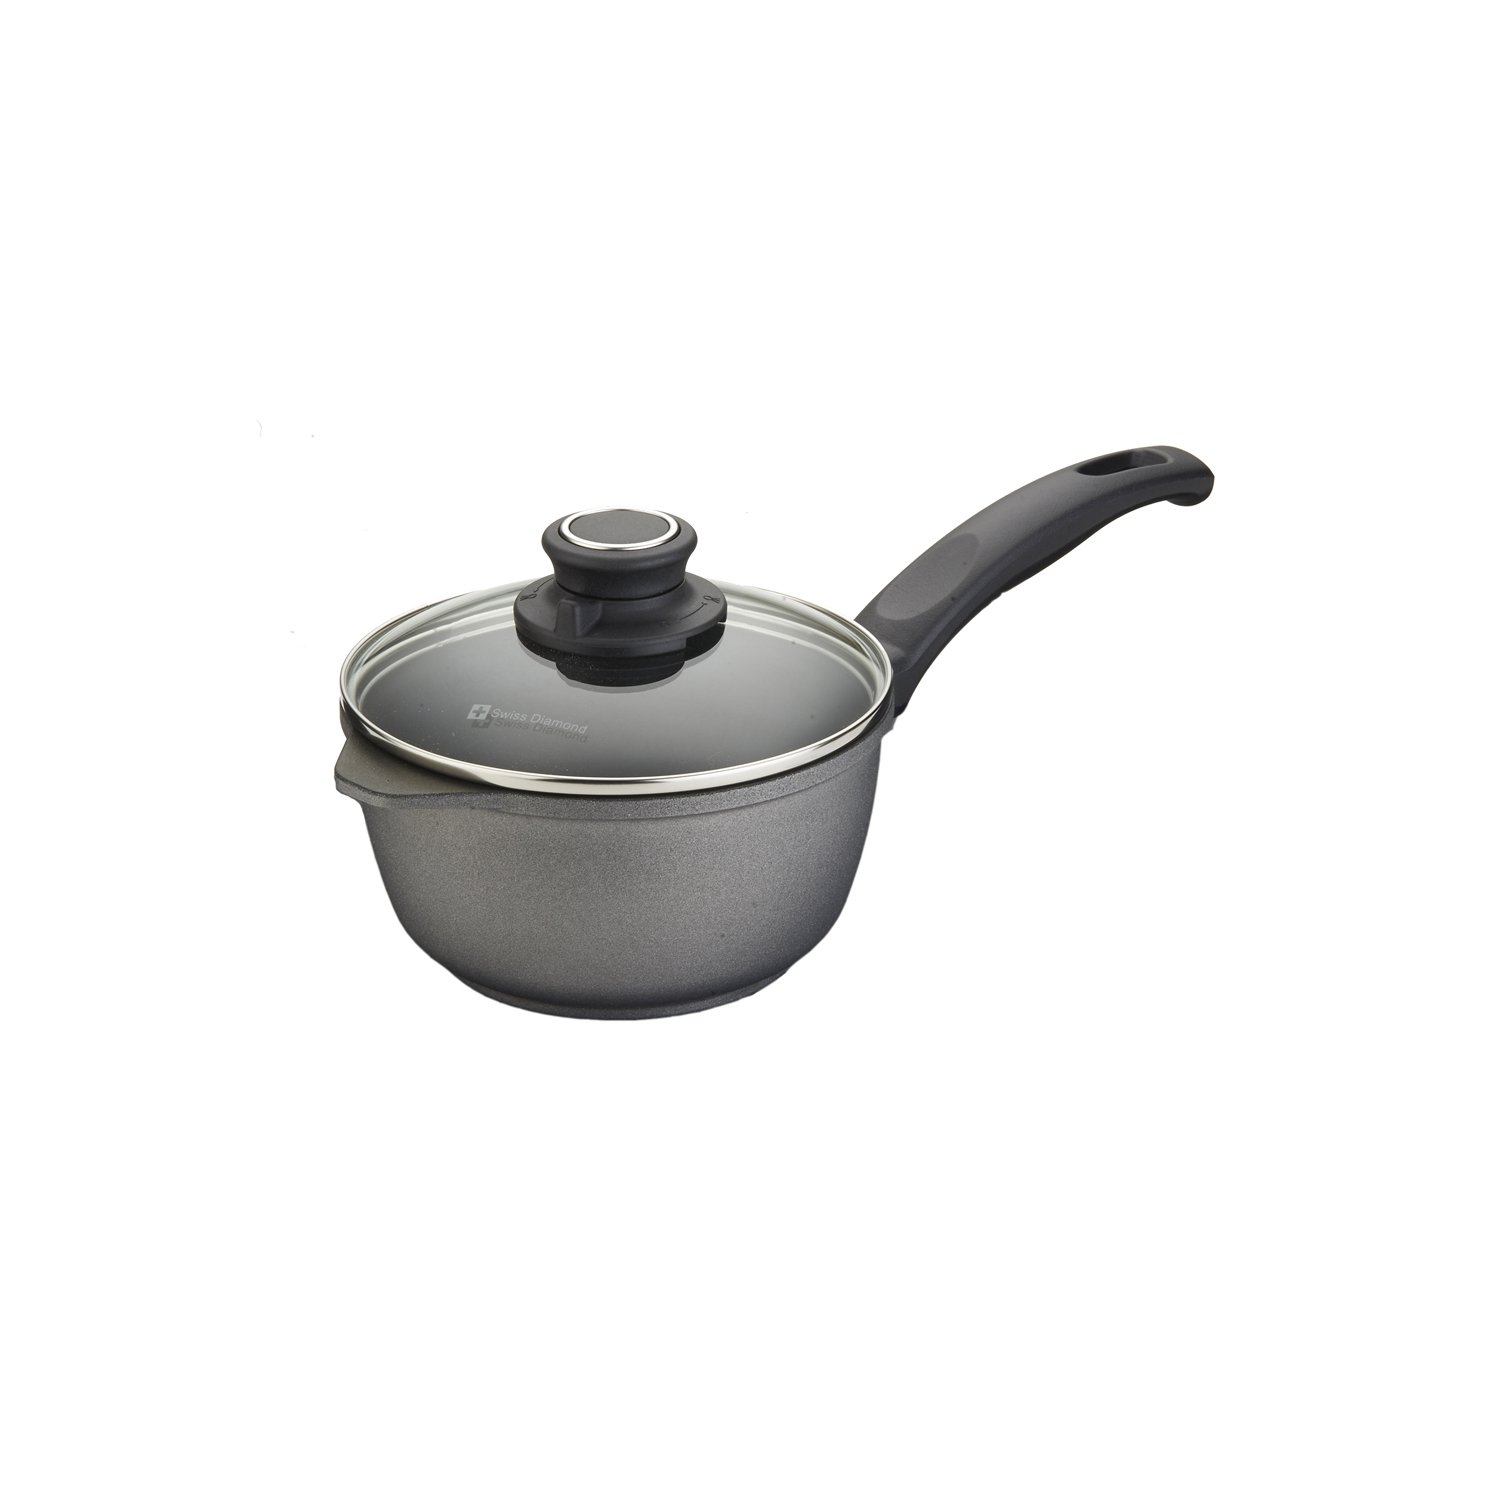 Swiss Diamond ST6716c Swiss Titan 1.4 quart Sauce Pan with Lid, Gray, 6.25''